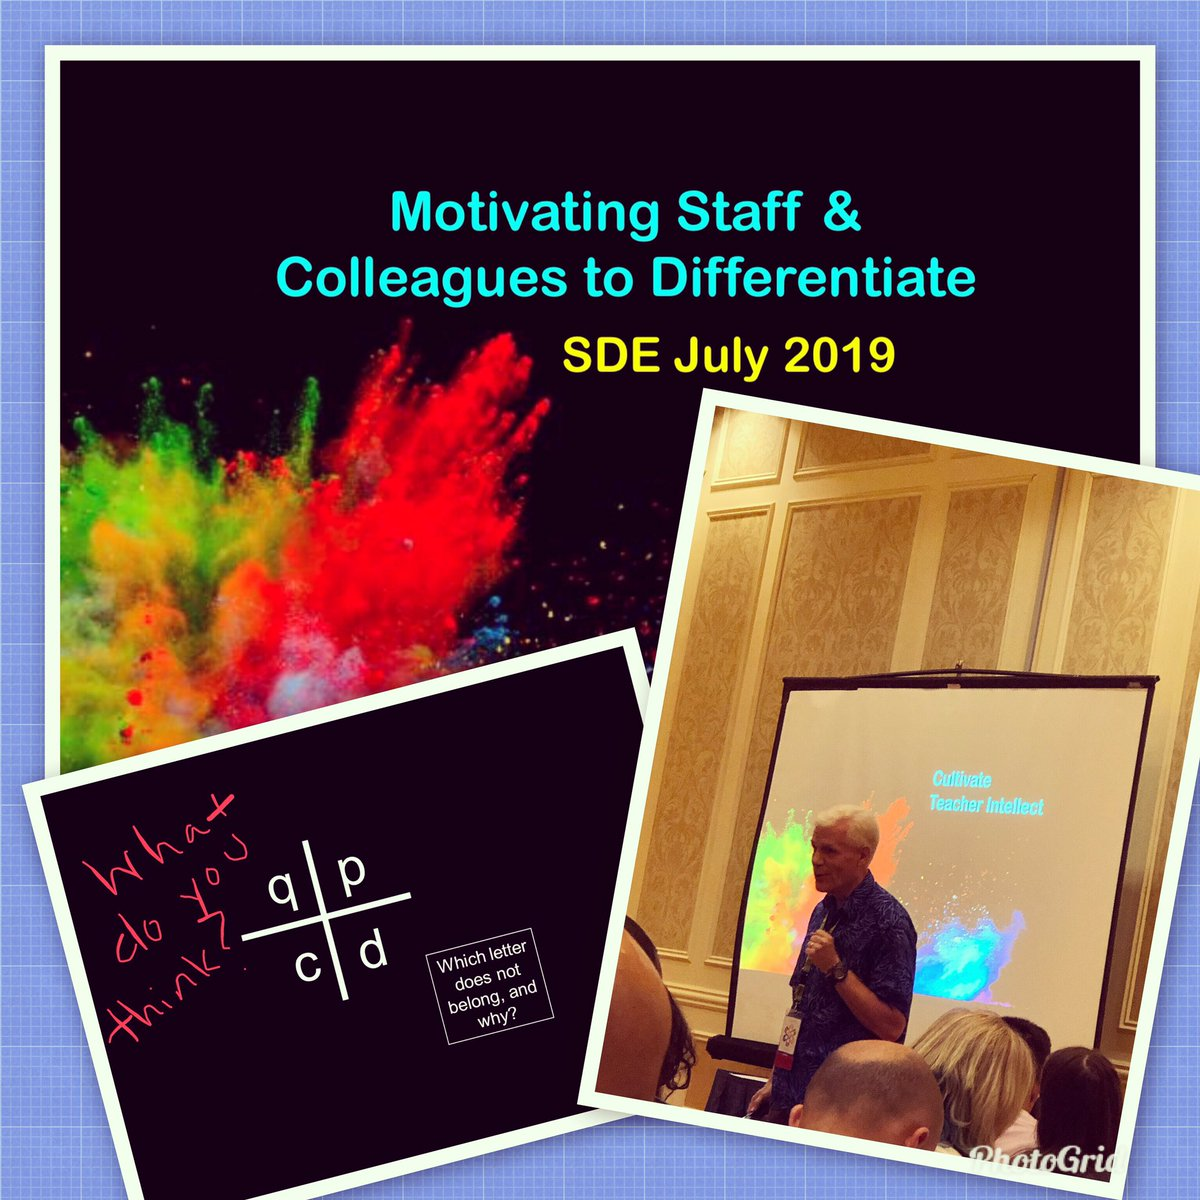 #sdeevents #sde2019 #SDENationals Getting motivated! #FosterJoyfulLearning #WeAreCrane  @rickwormeli2<br>http://pic.twitter.com/S1fwRRG93A